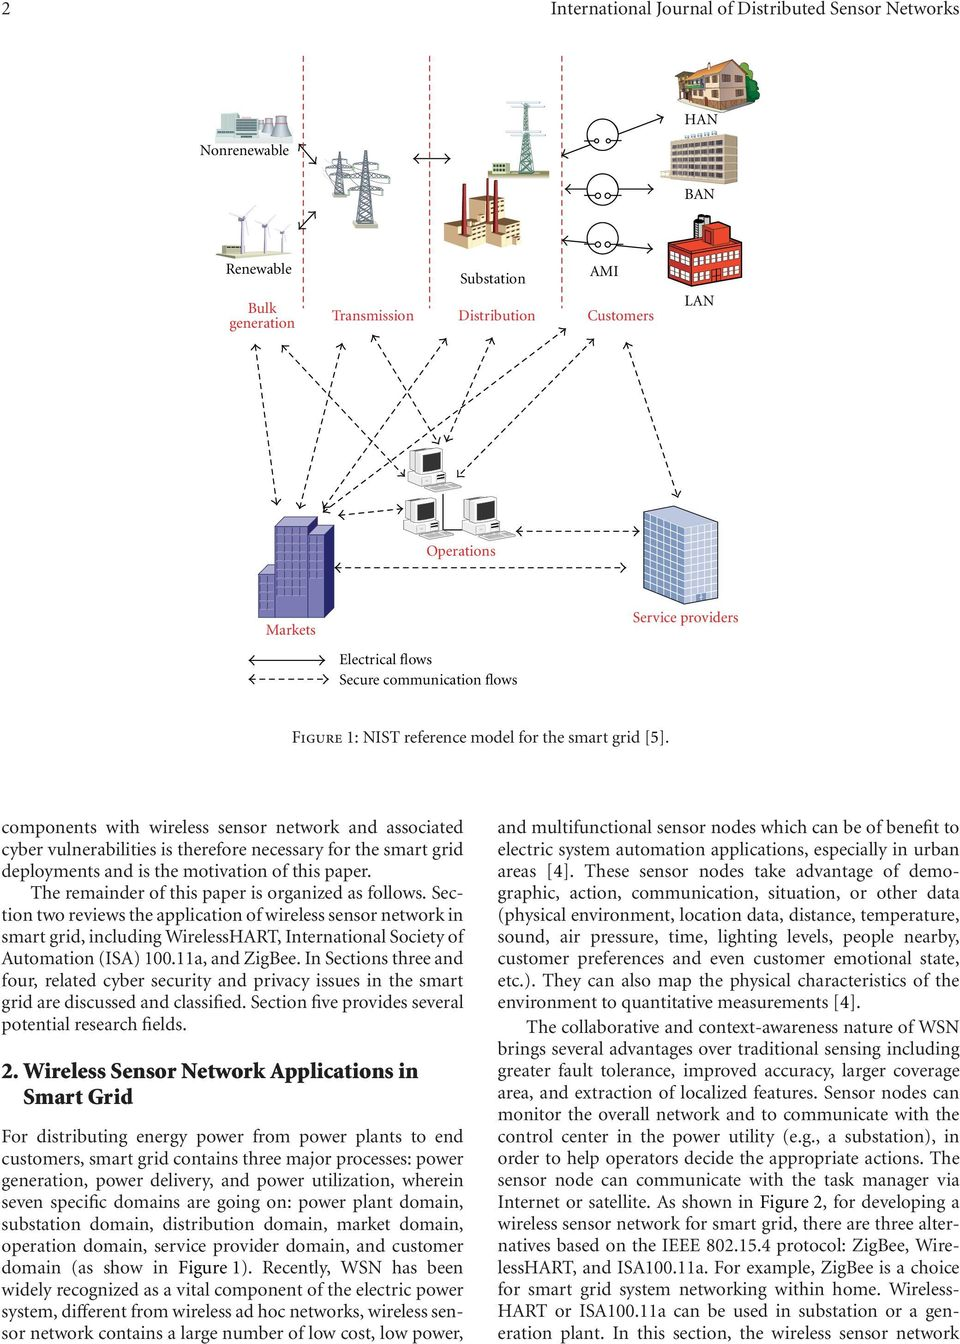 components with wireless sensor network and associated cyber vulnerabilities is therefore necessary for the smart grid deployments and is the motivation of this paper.